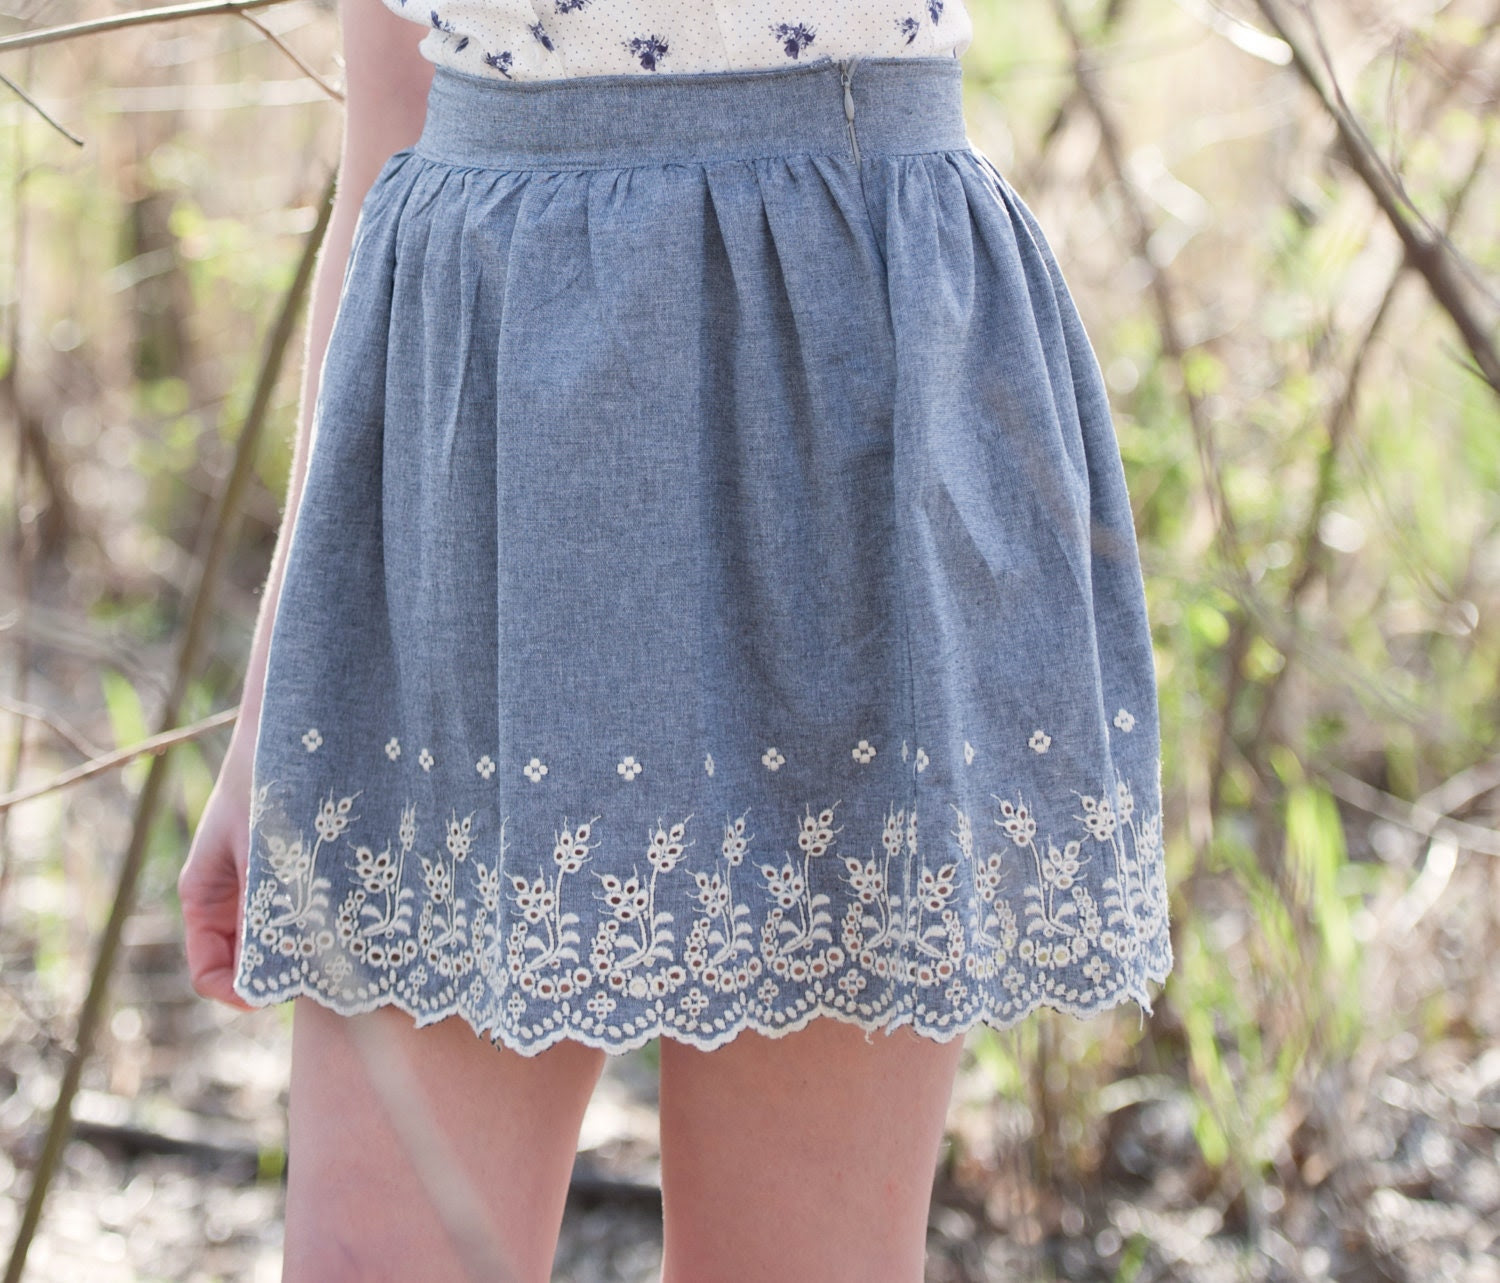 Vintage inspired lace skirt - denim blue with high waisted full pleated style scalloped edge, bohemian boho country farmer rustic - medium - Minxshop